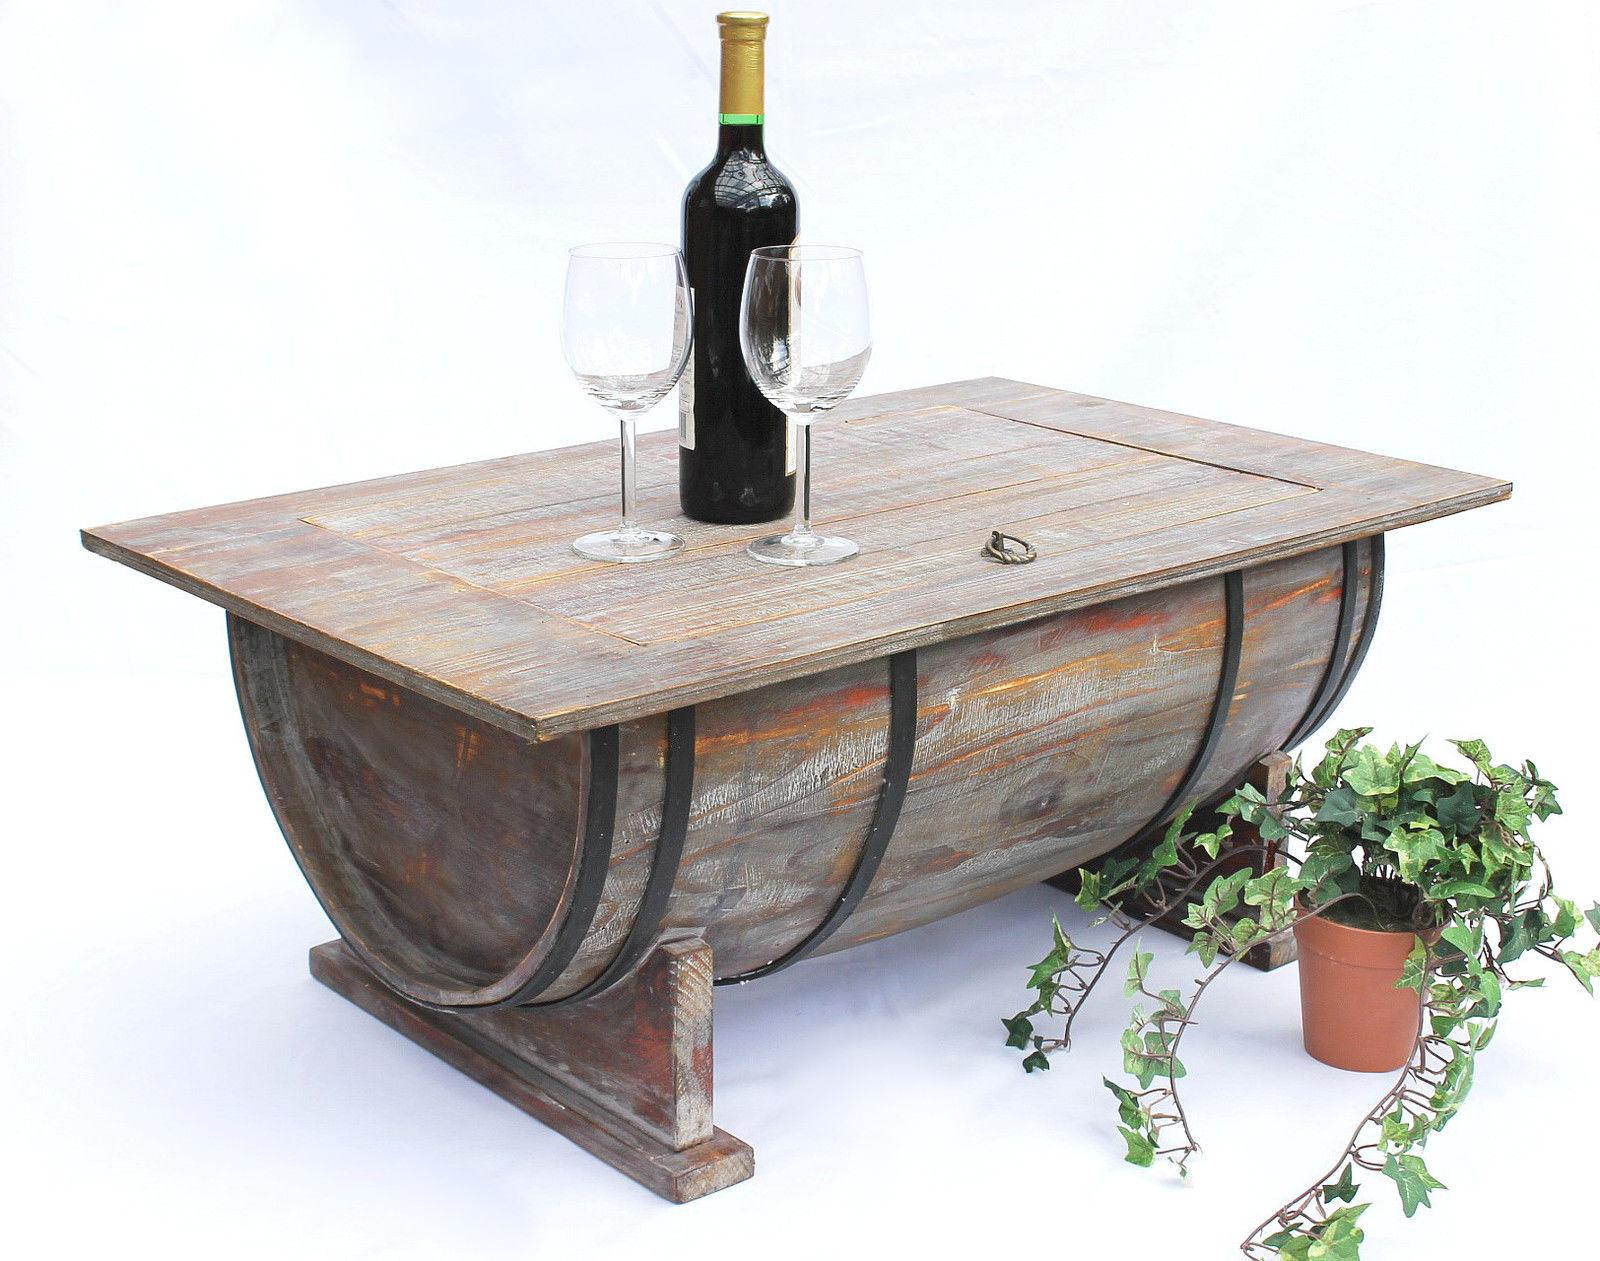 Coffee table wine barrel 5084 wooden rack 80cm side bar ebay for Coffee tables 80cm wide